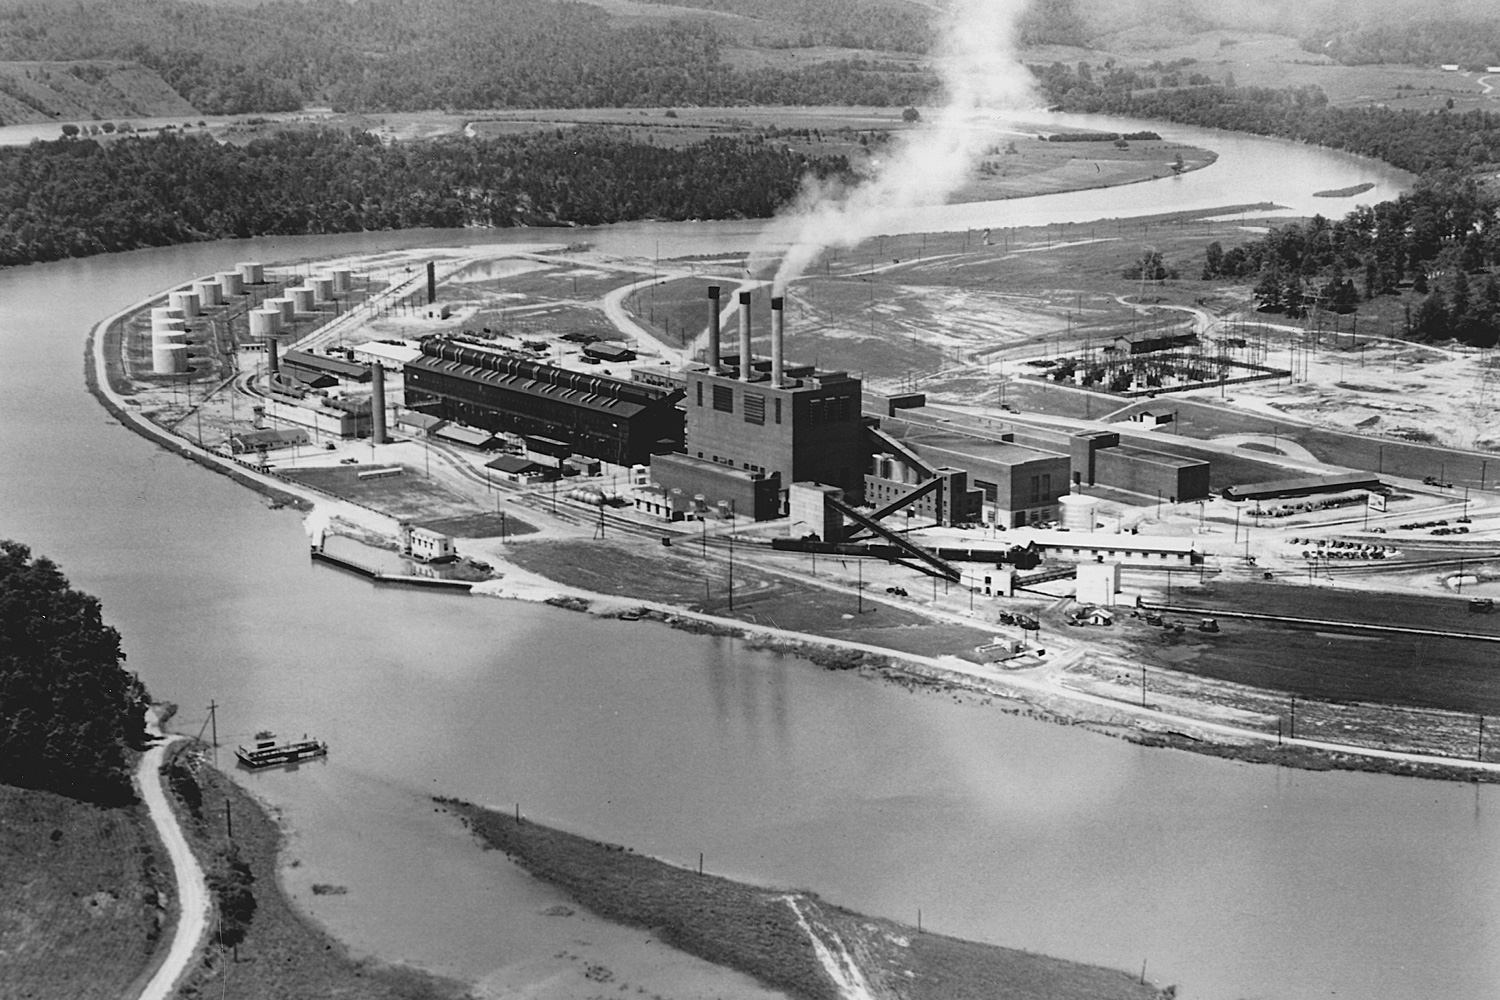 K-25 Powerhouse with S-50 Plant in 1945